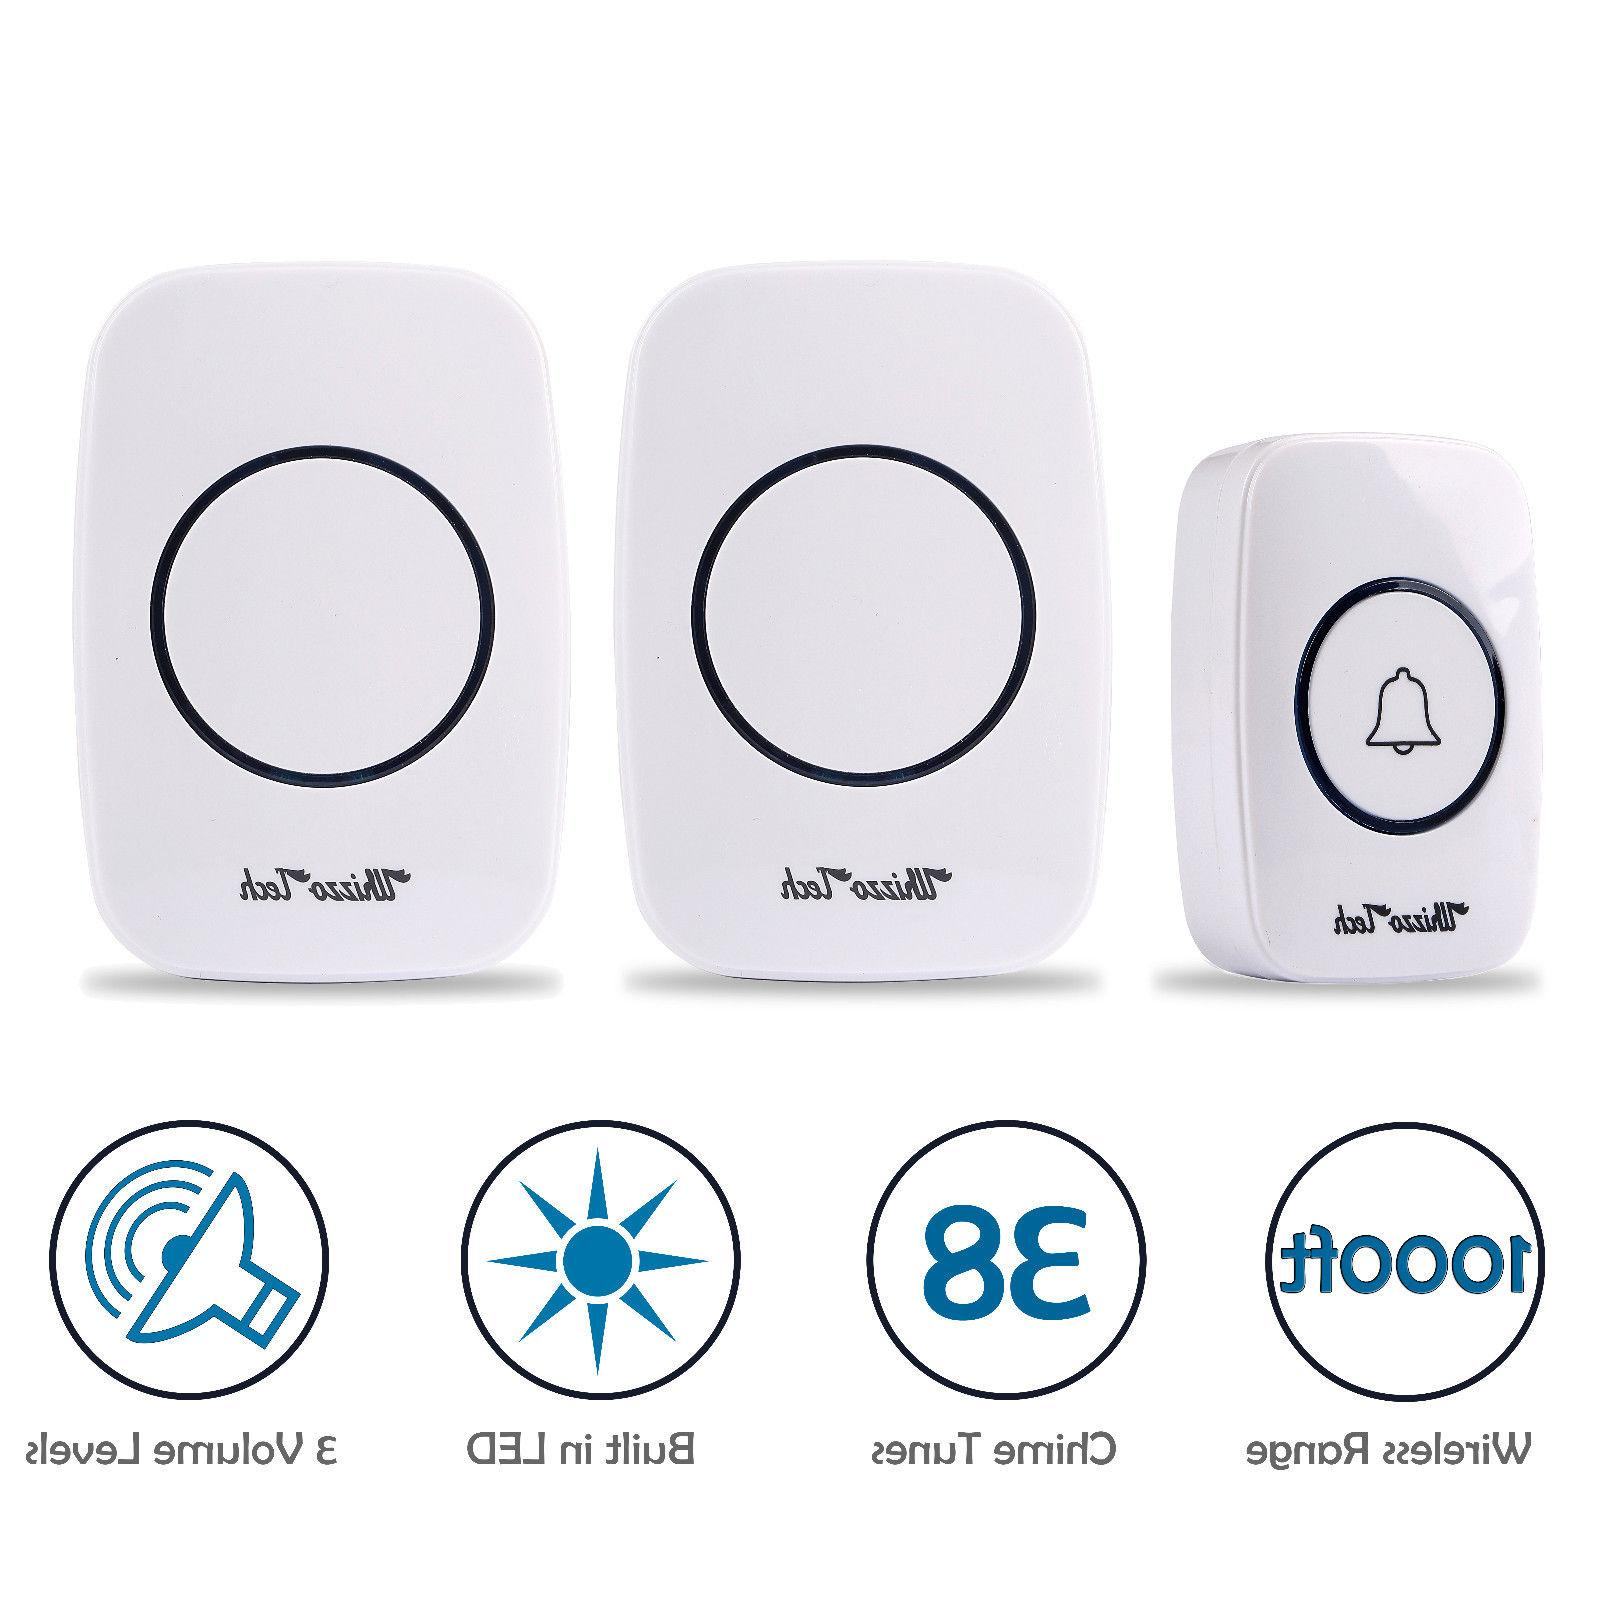 led 3 volume 1000ft wireless doorbell 38